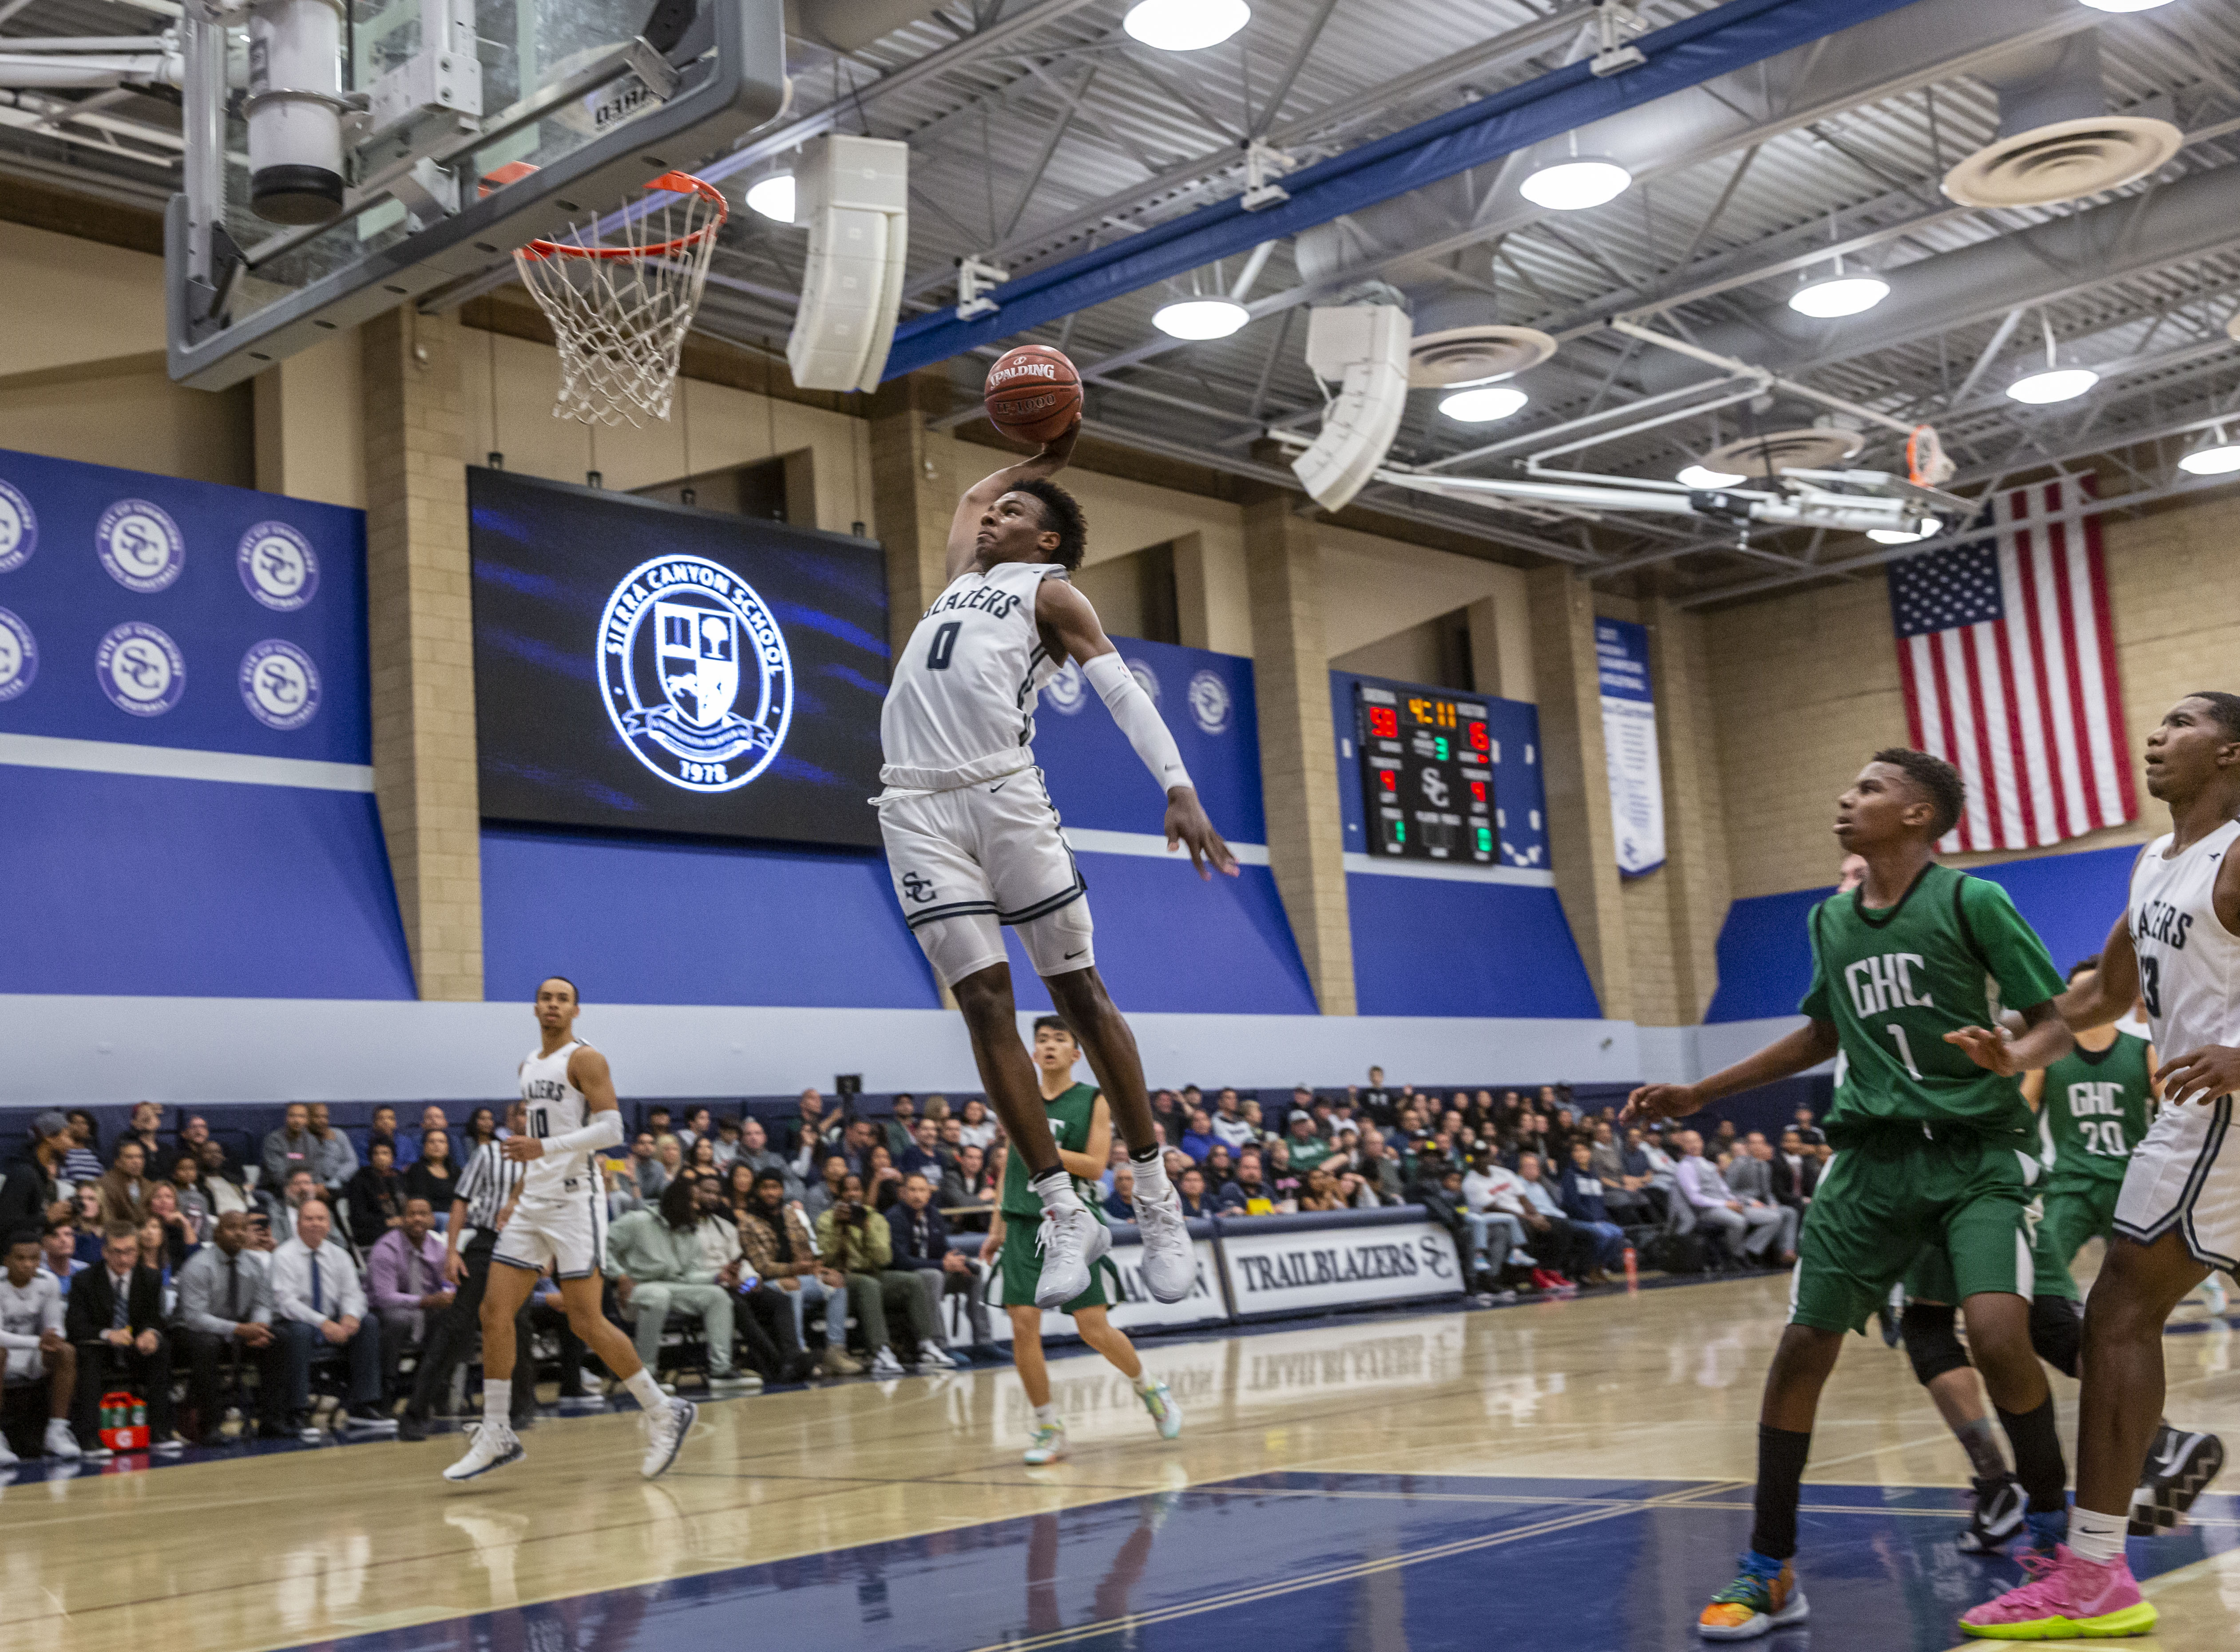 Bronny James Sierra Canyon Spectacle Espn Cameras Sold Out Crowds And Security Guards The Washington Post